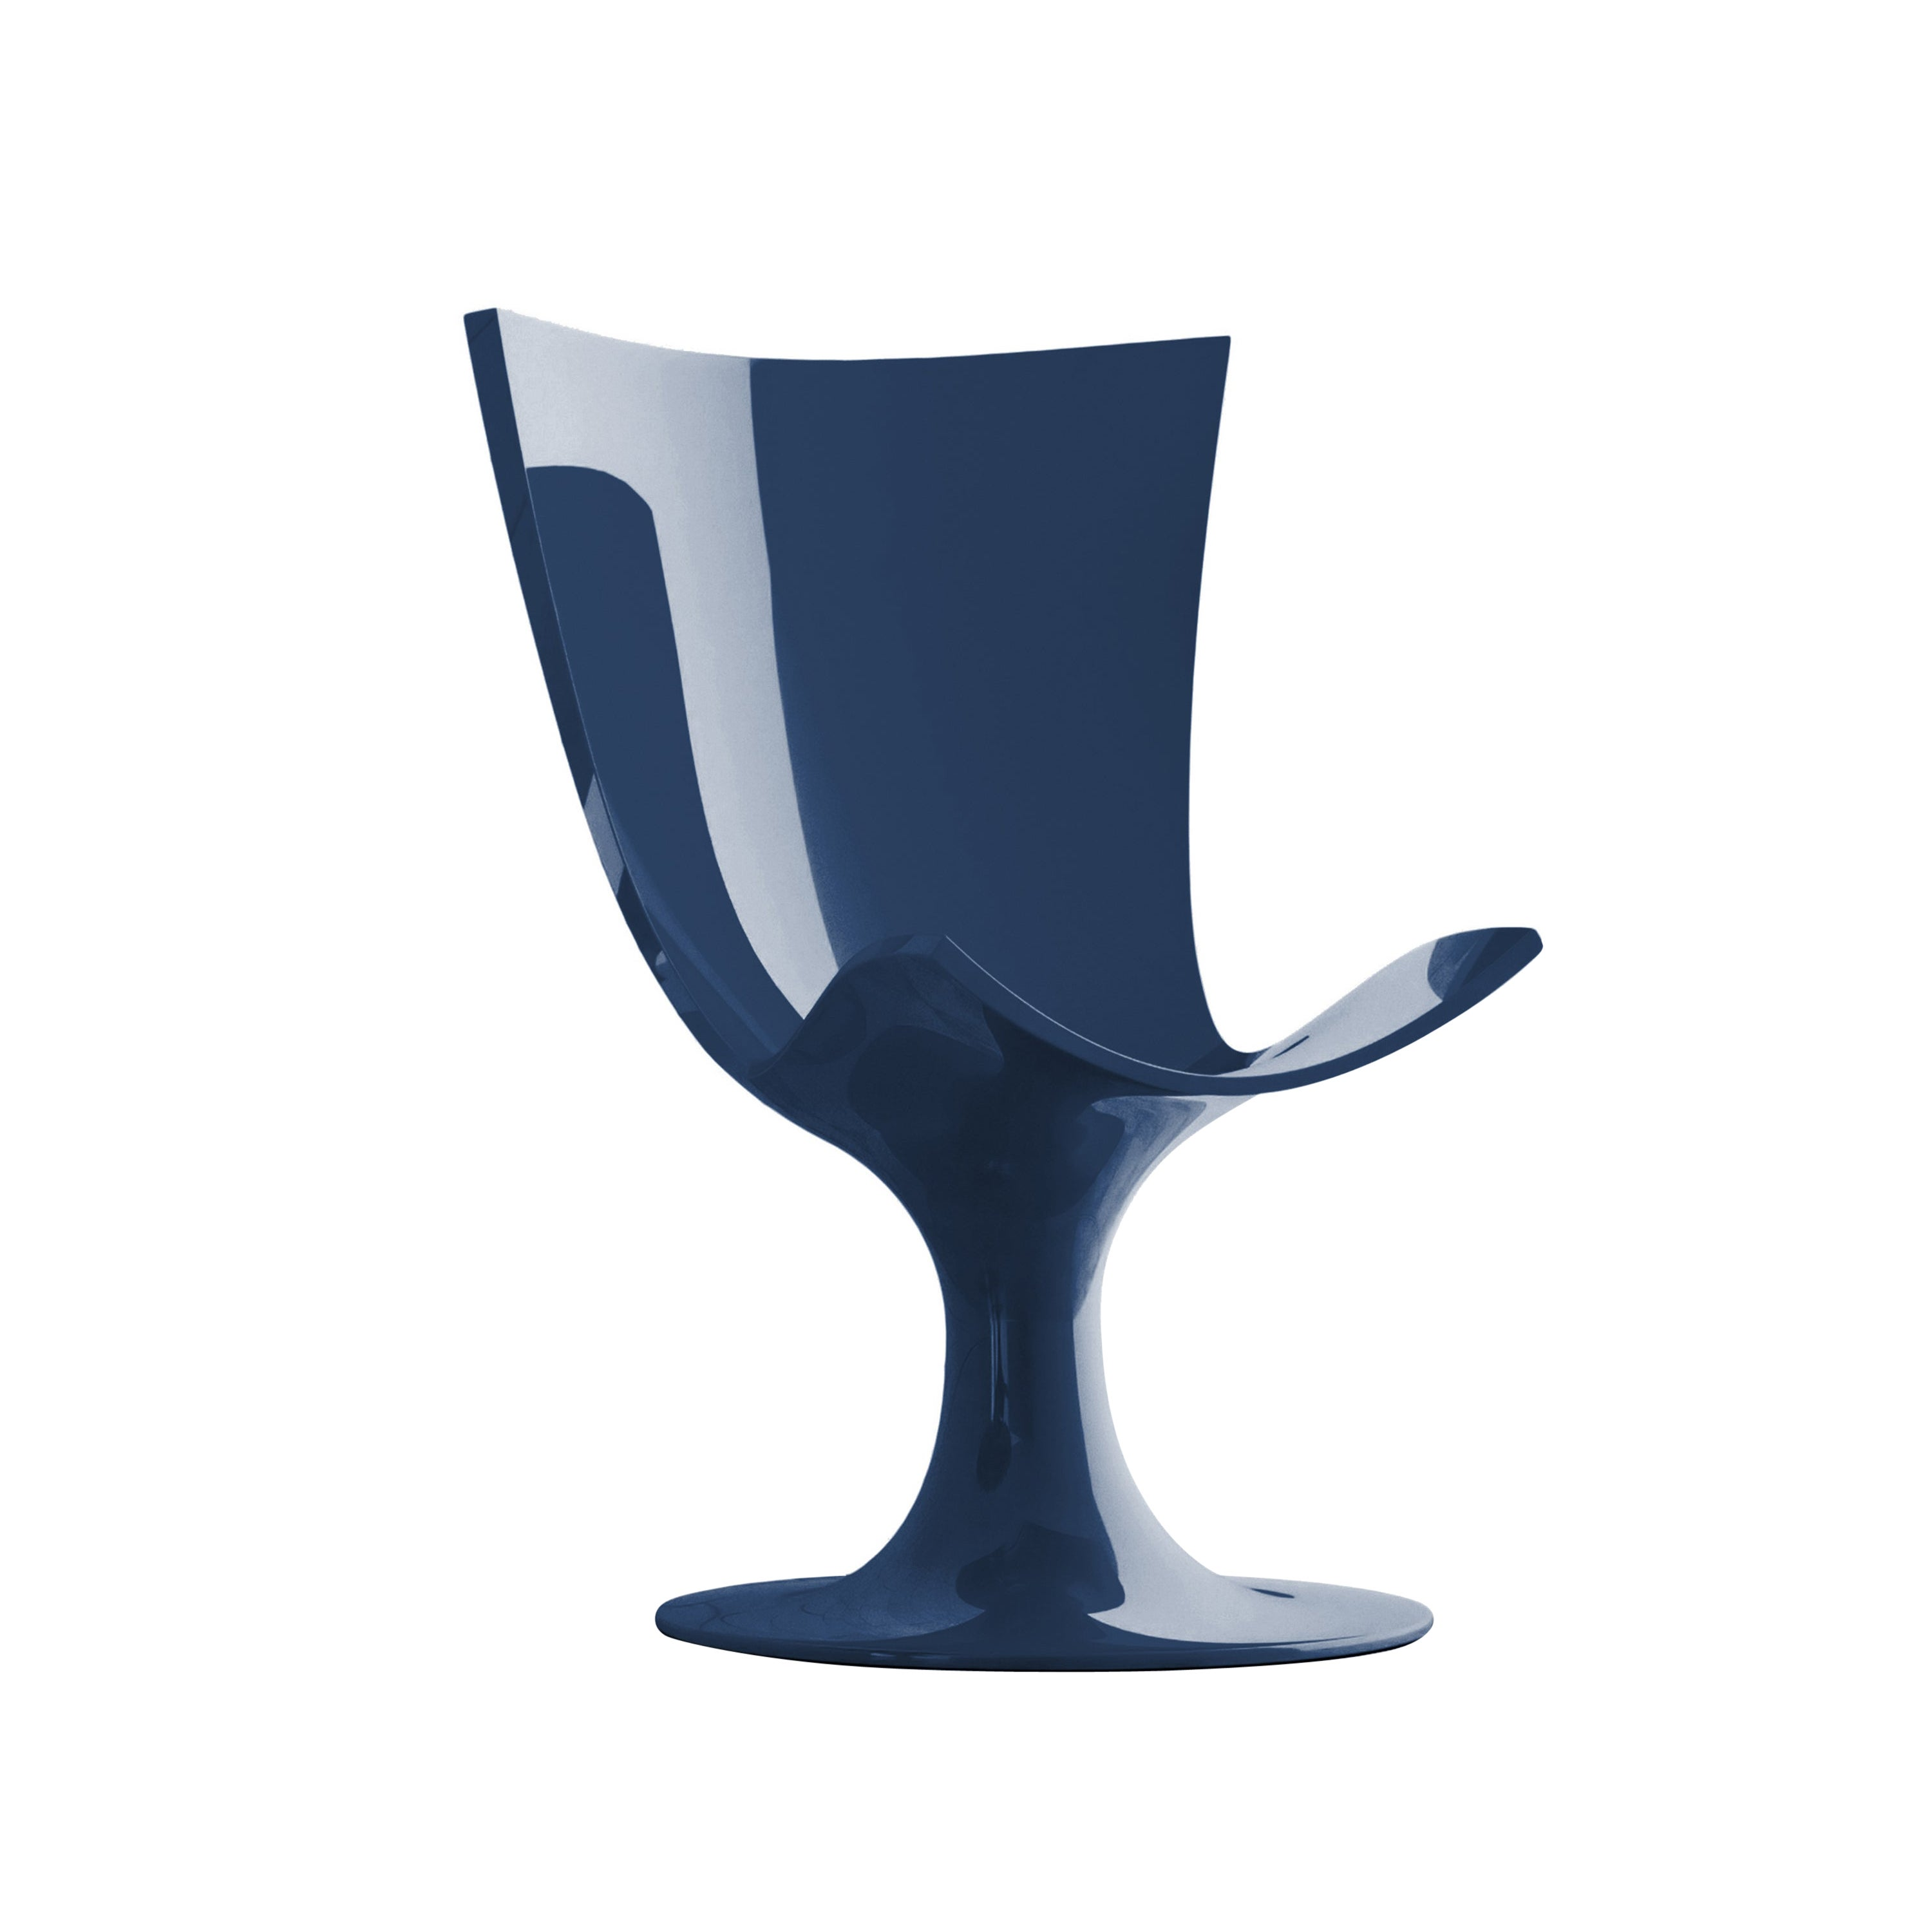 Imposing Blue Seat, Decorative and Sculptural Santos Chair by Joel Escalona